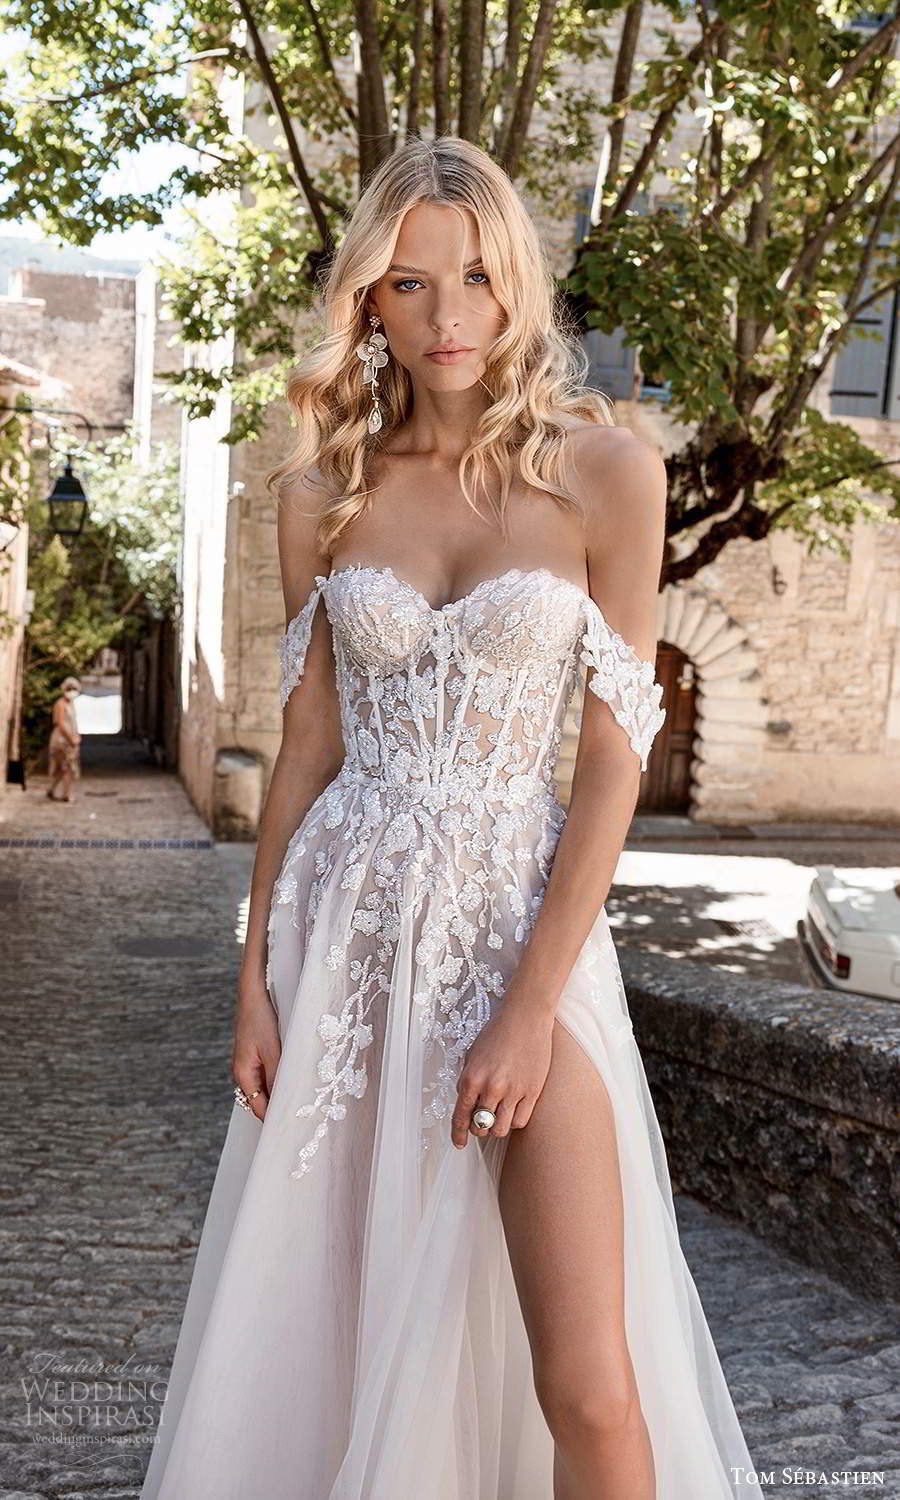 tom sebastien 2021 bridal provence off shoulder straps sweetheart neckline heavily embellished bodice a line ball gown wedding dress chapel train slit skirt (1) zv